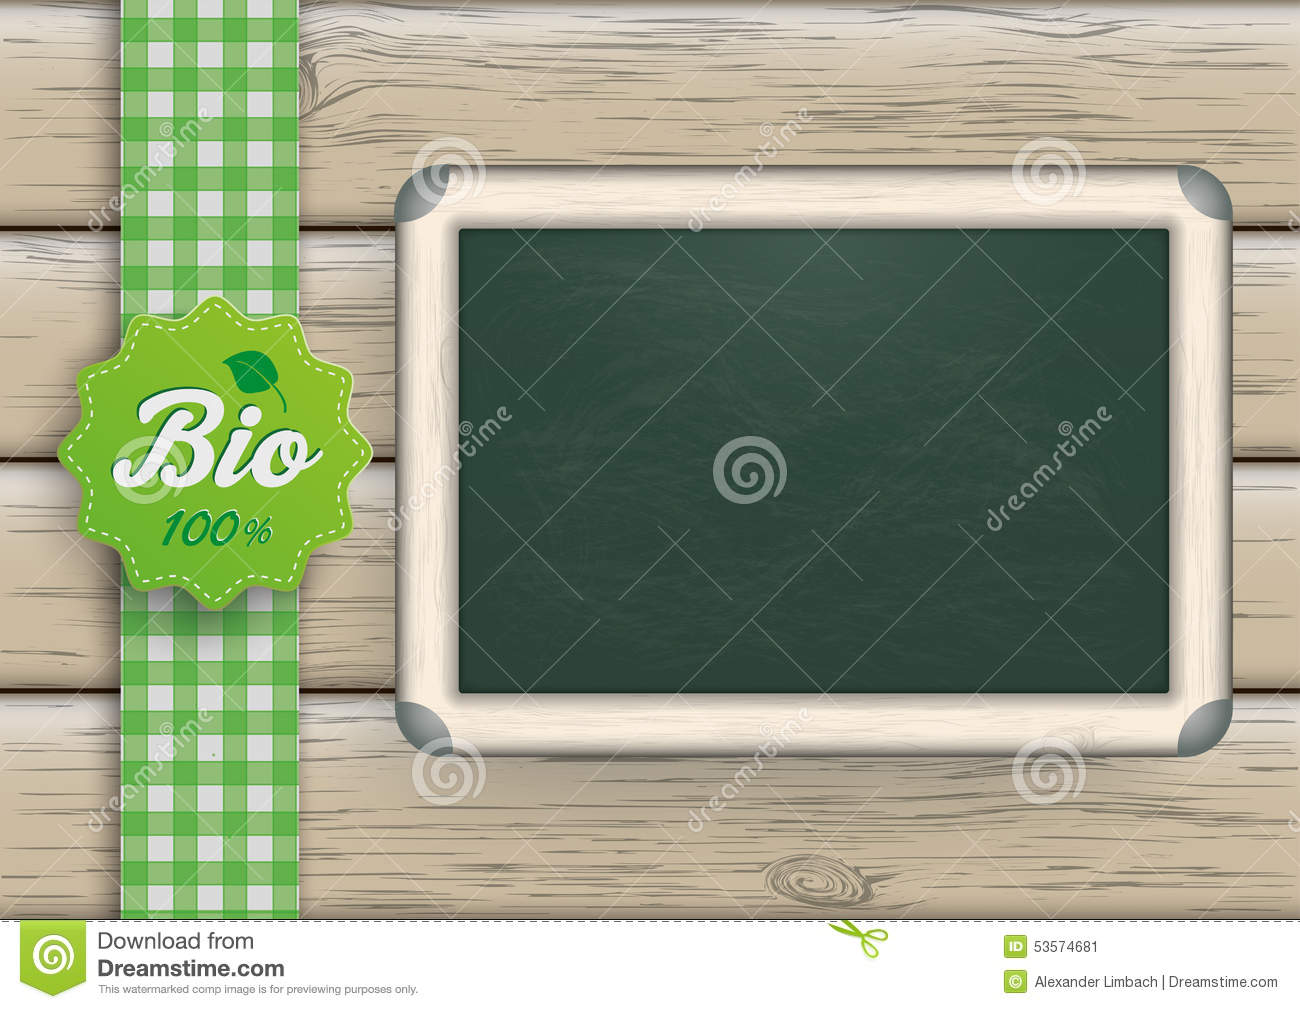 blackboard autobiography A blackboard (also known as a chalkboard) is a reusable writing surface on which text or drawings are made with sticks of calcium sulfate or calcium carbonate, known, when used for this purpose, as chalk.